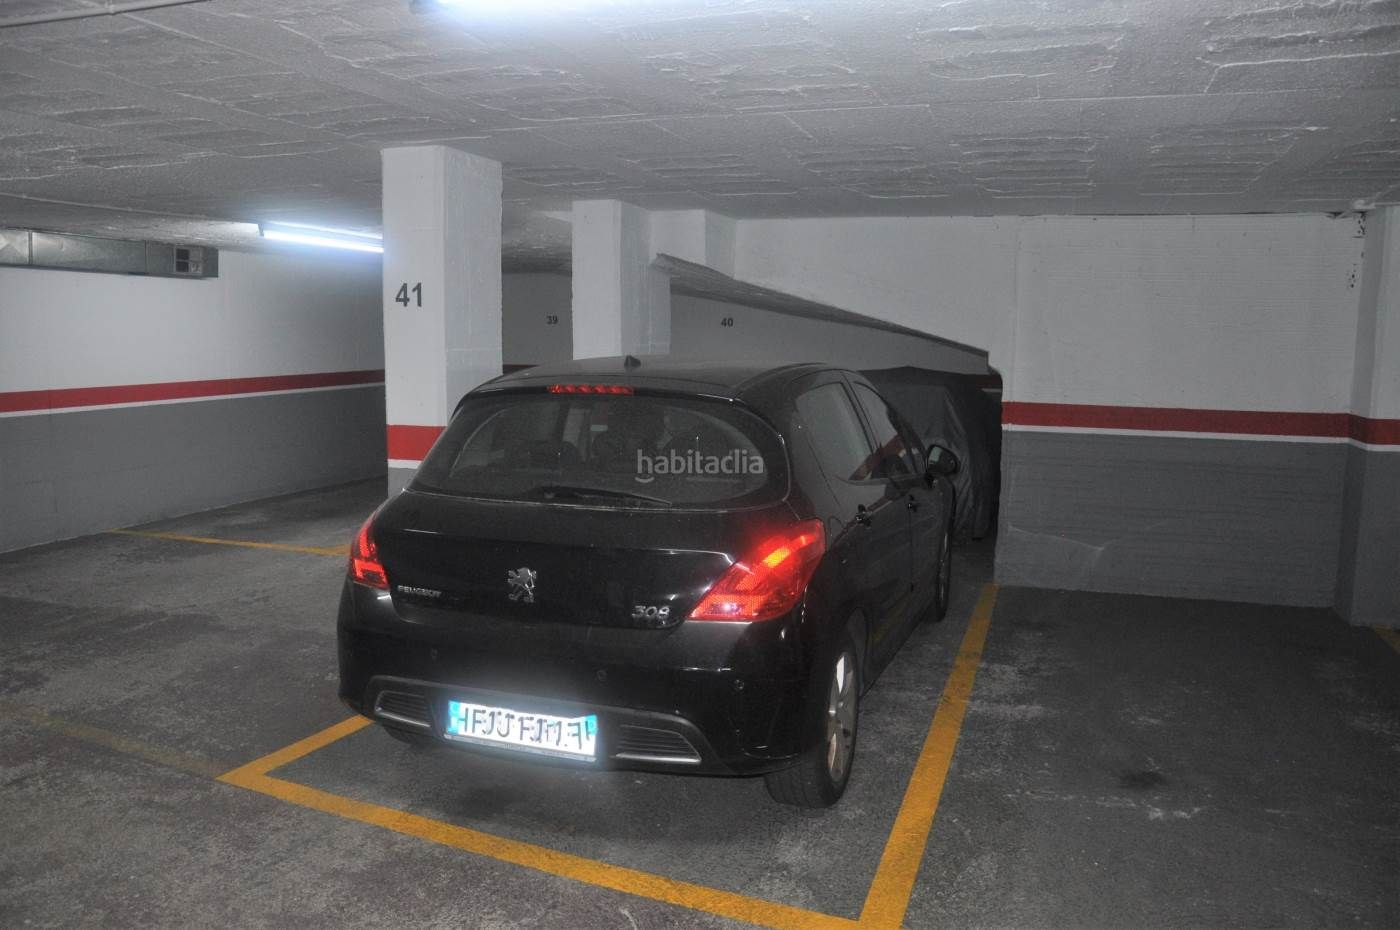 Autoparkplatz in Vinyets-Molí Vell. Plaza de parking, plaza cataluña